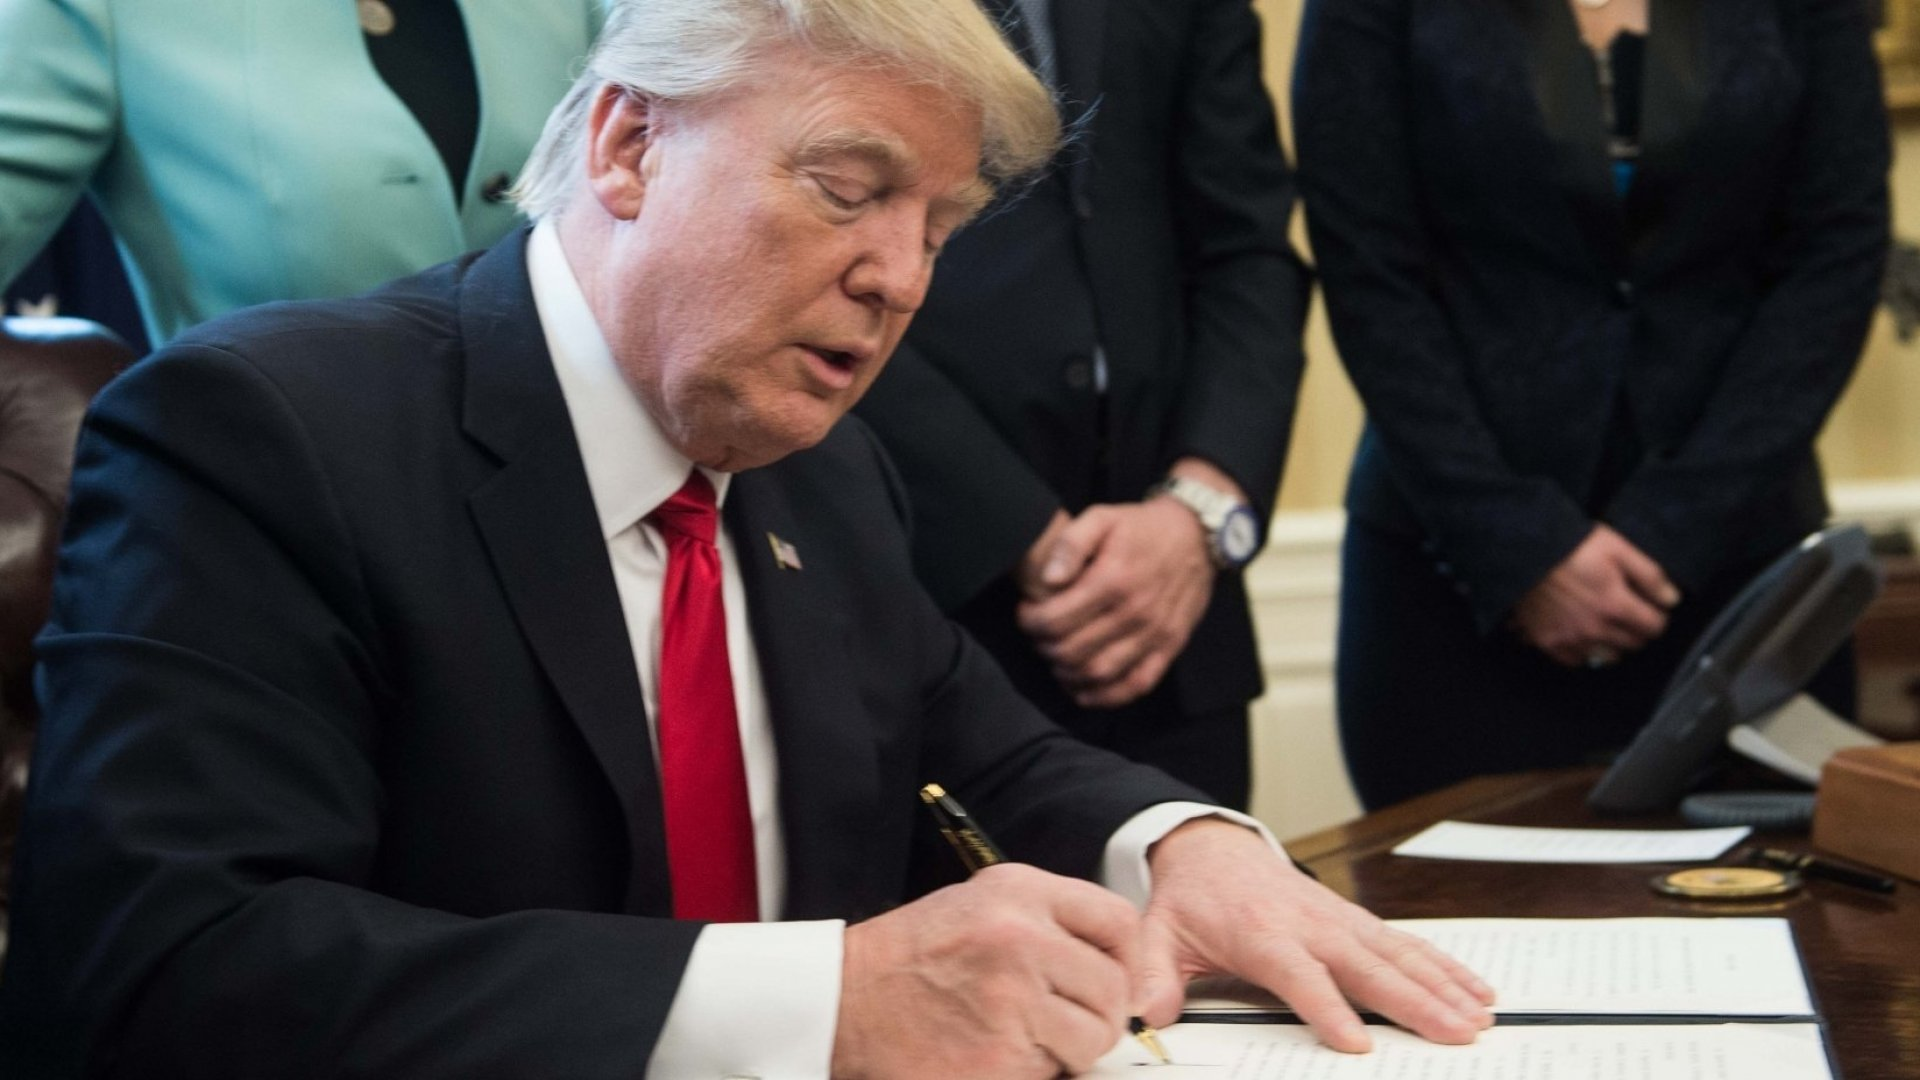 US President Donald Trump signs an executive order with small business leaders in the Oval Office at the White House in Washington, DC on January 30, 2017.